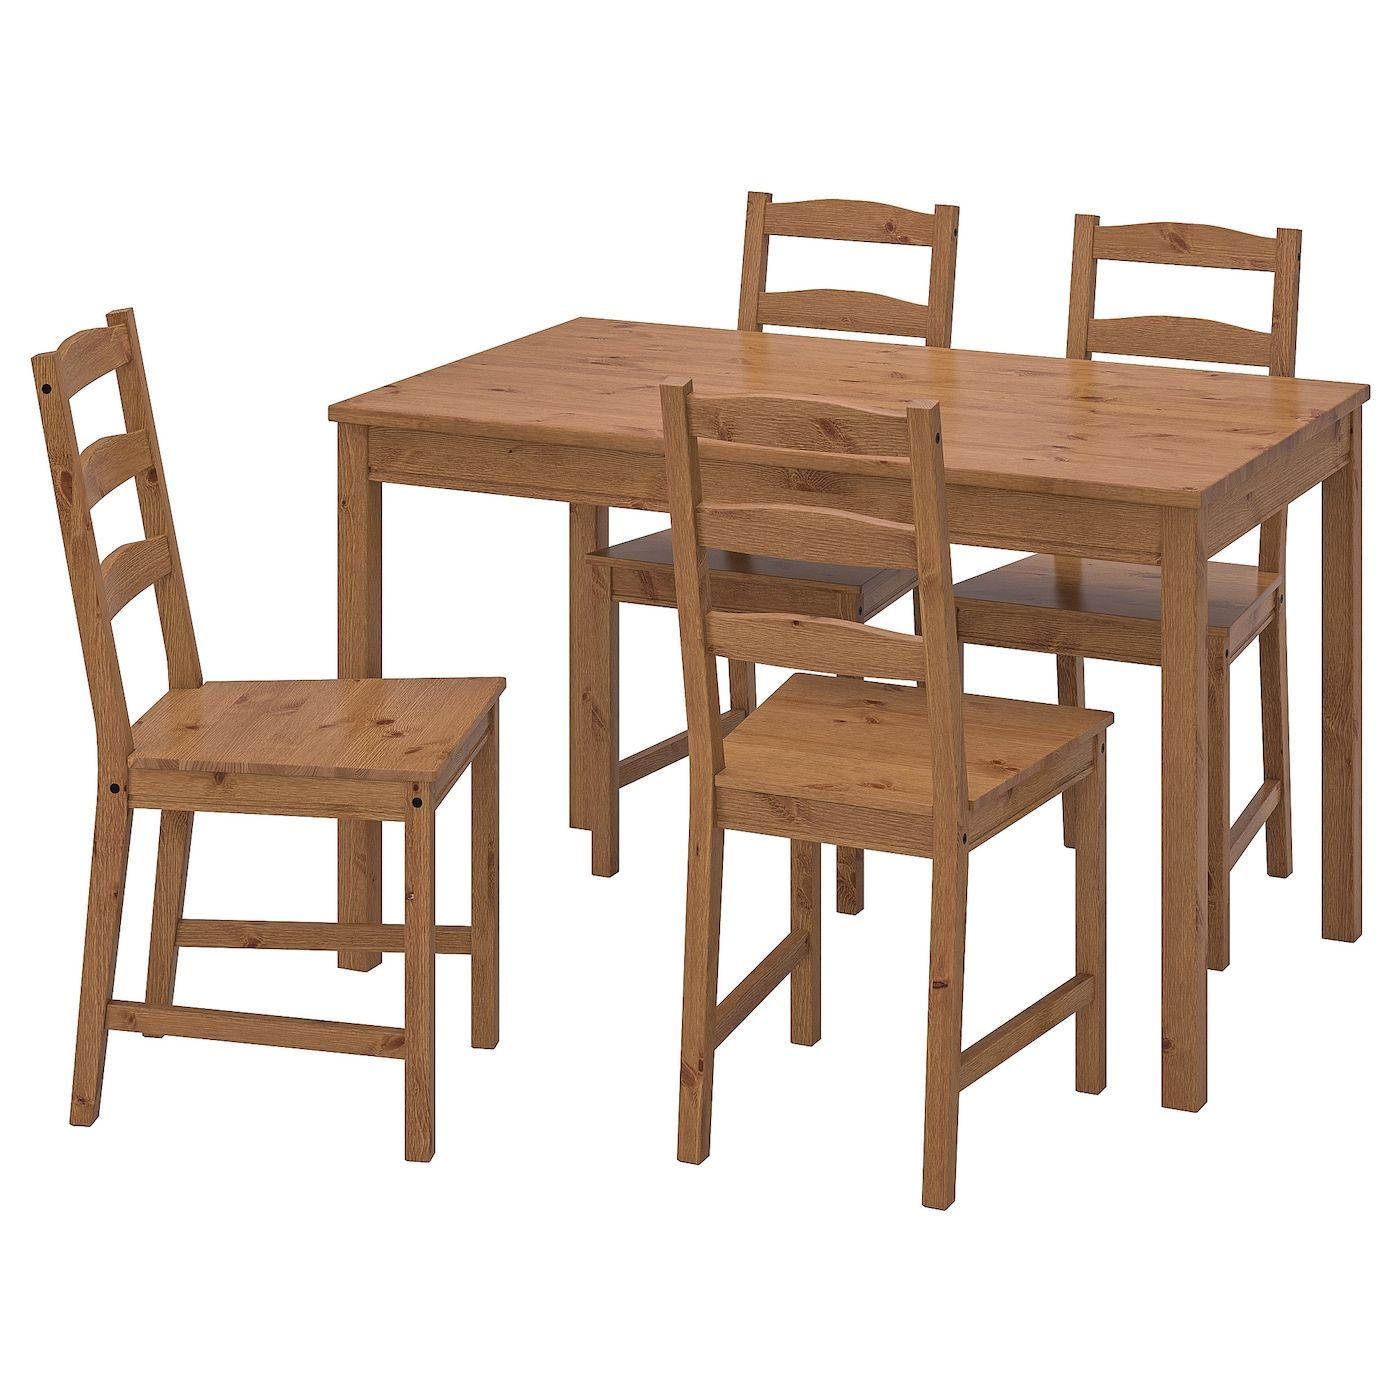 Ikea Jokkmokk Antique Stain Table And 4 Chairs Ikea Wood Table